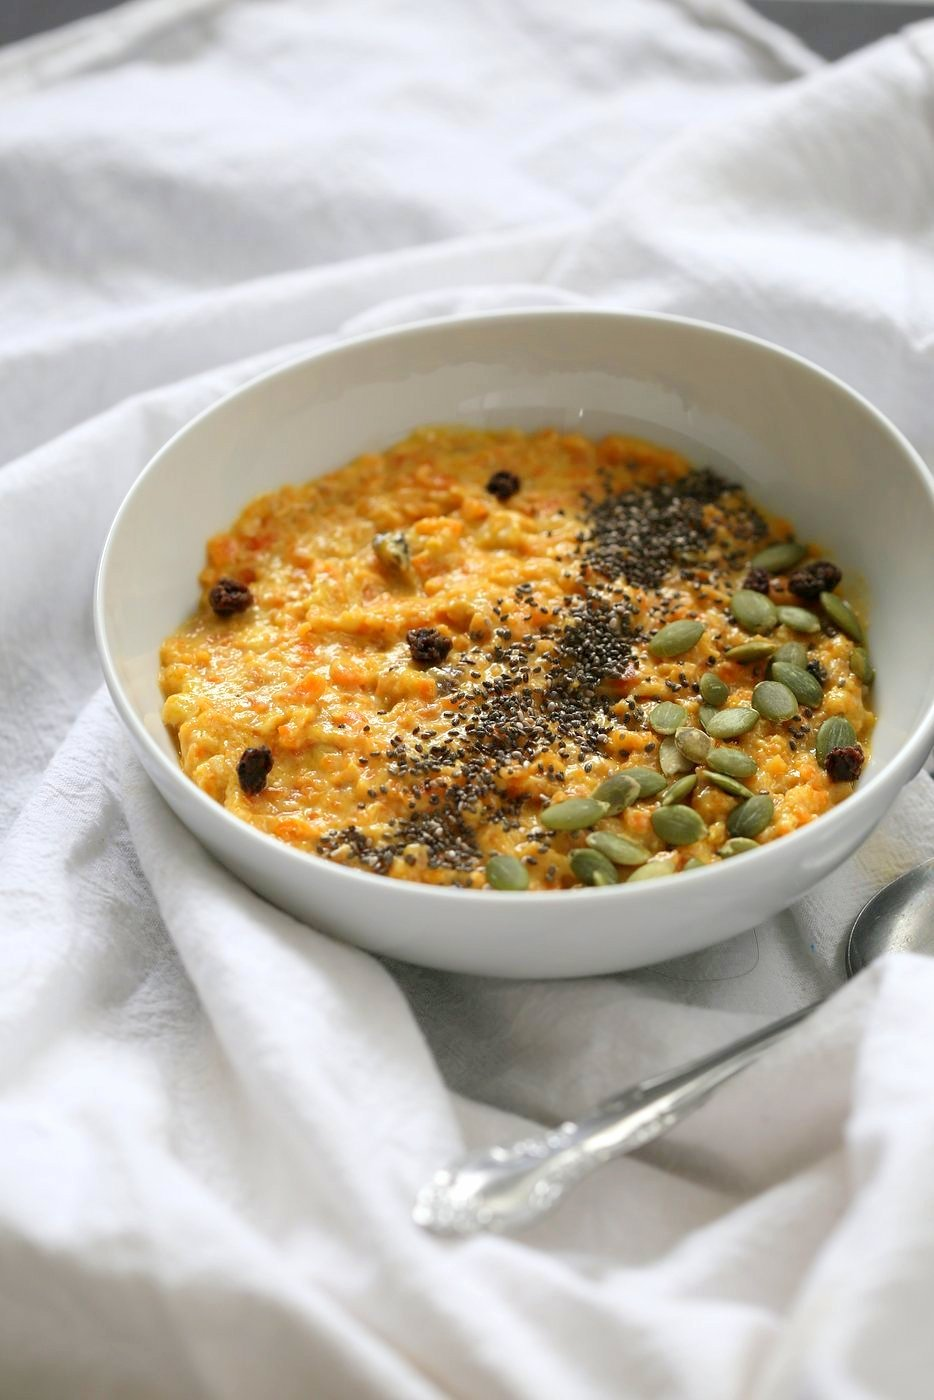 Carrot Pudding with Cardamom - Carrot Kheer Recipe. Shredded Carrots slow cooked with almond milk, roasted nuts and cardamom. Serve as is or top with toasted nuts, seeds and chia. Vegan Gluten-free Soy-free Nut-free option | VeganRicha.com